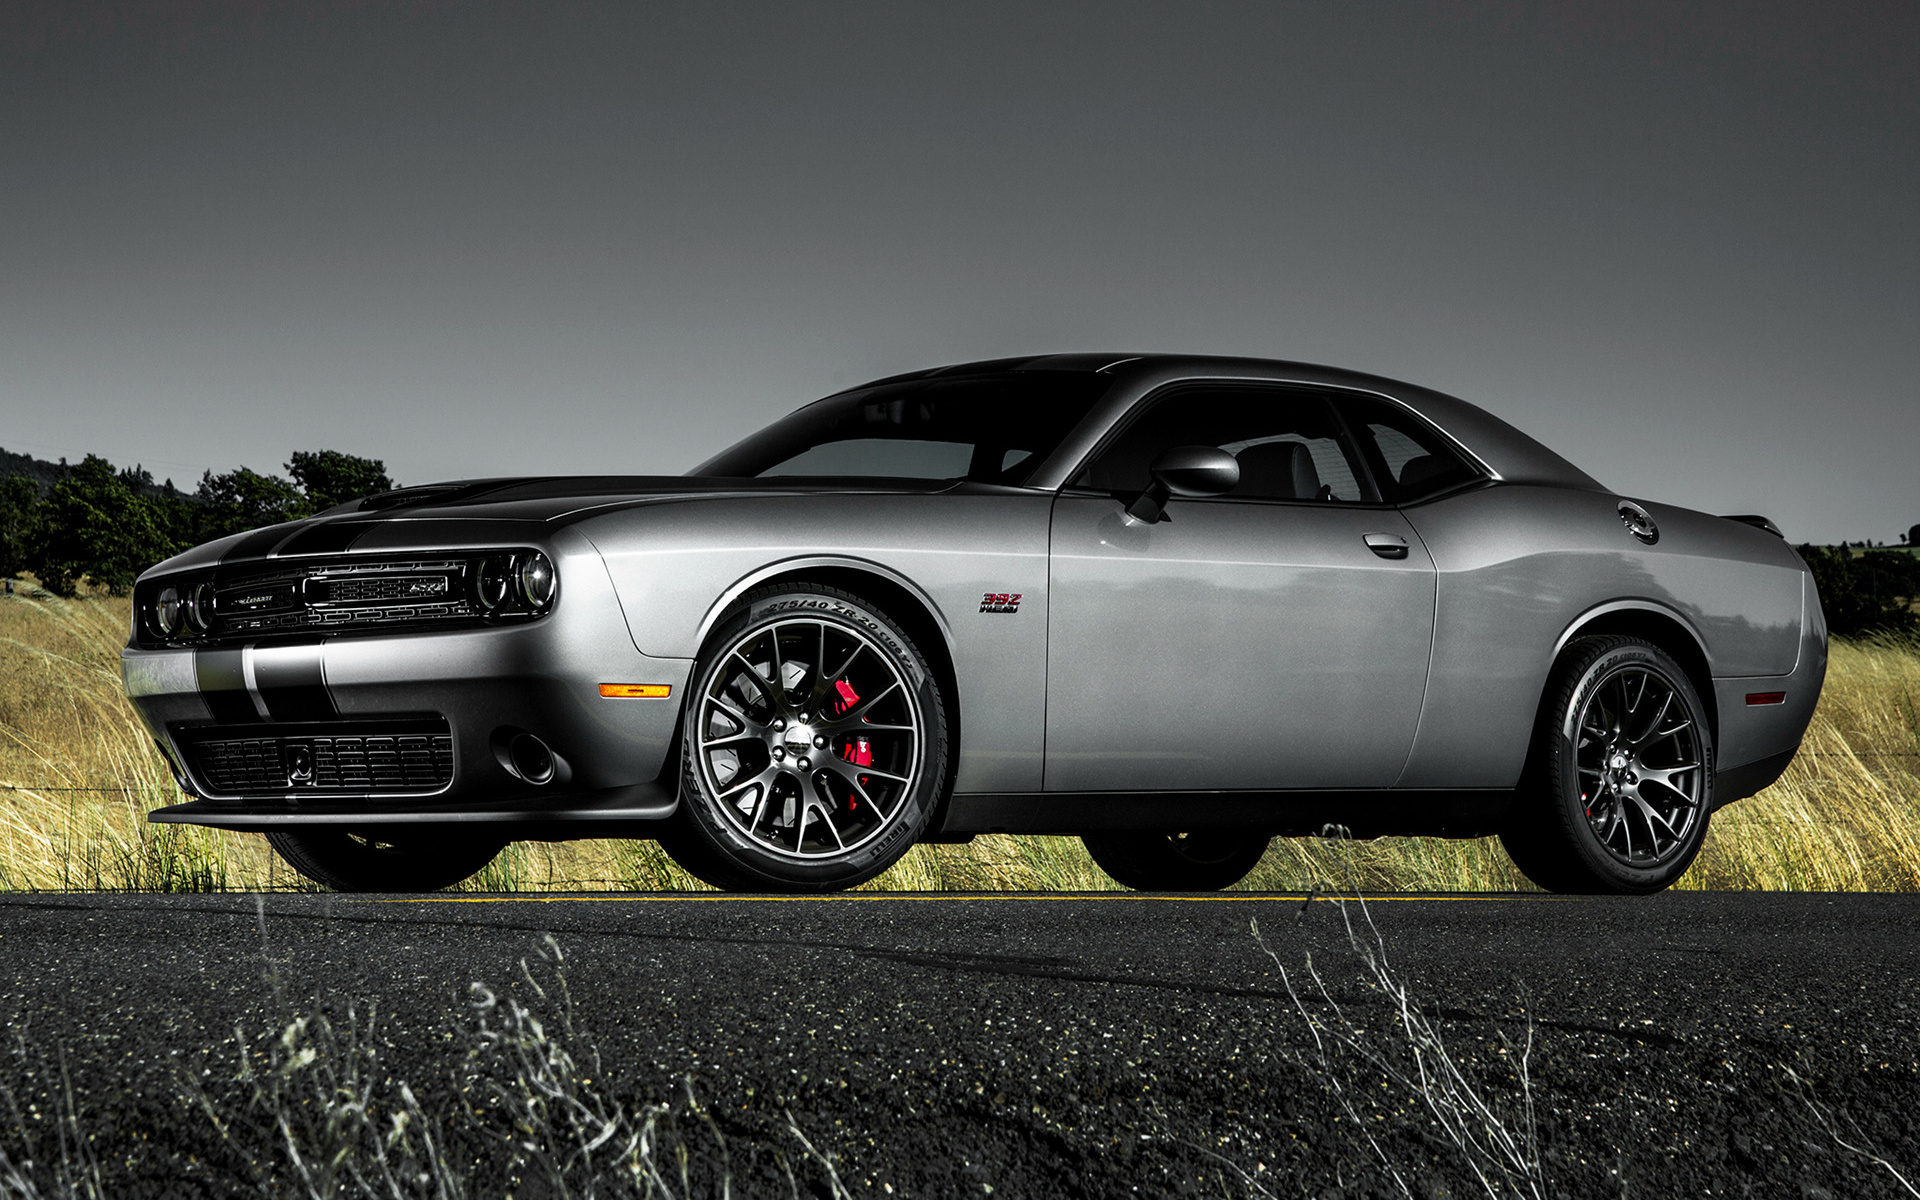 Dodge Challenger 2014 Srt8 392